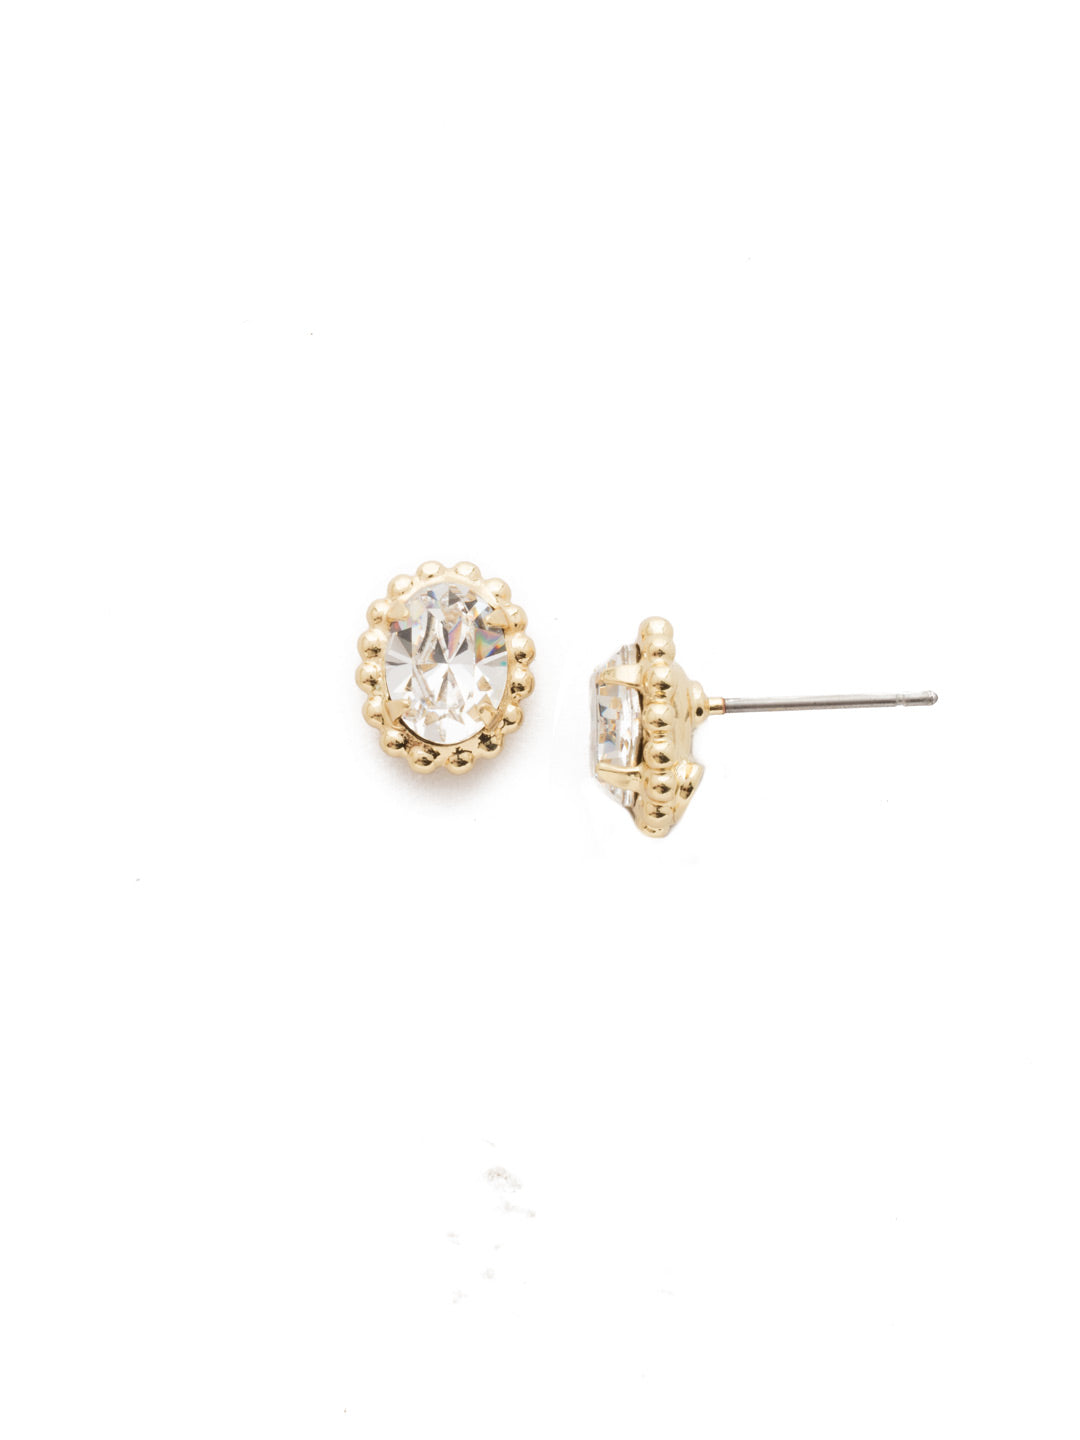 Maisie Stud Earrings - EEH11BGCRY